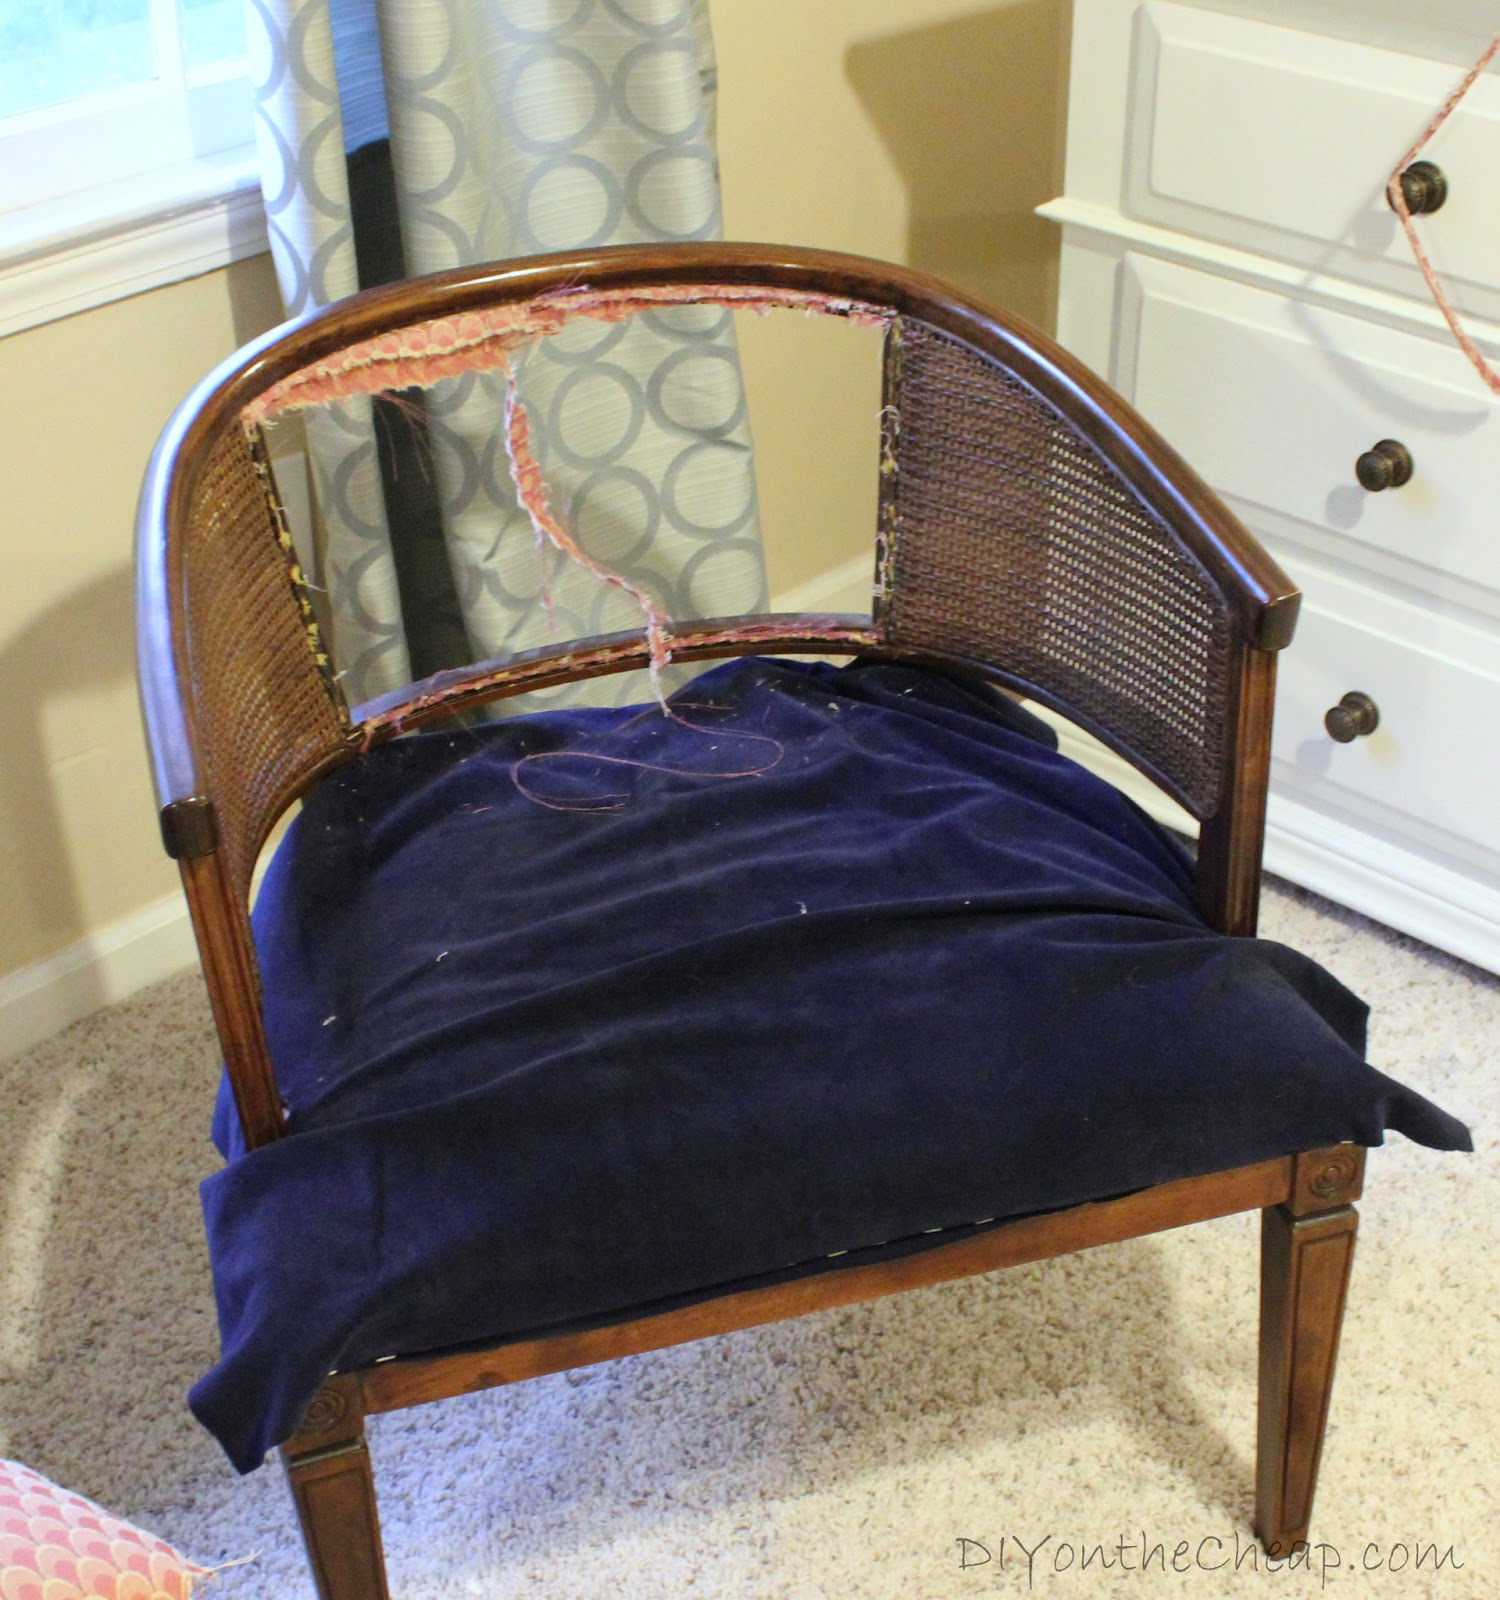 Best Fabrics For Chairs Recycled Plastic My Lazy Girl 39s Guide To Reupholstering A Tutorial